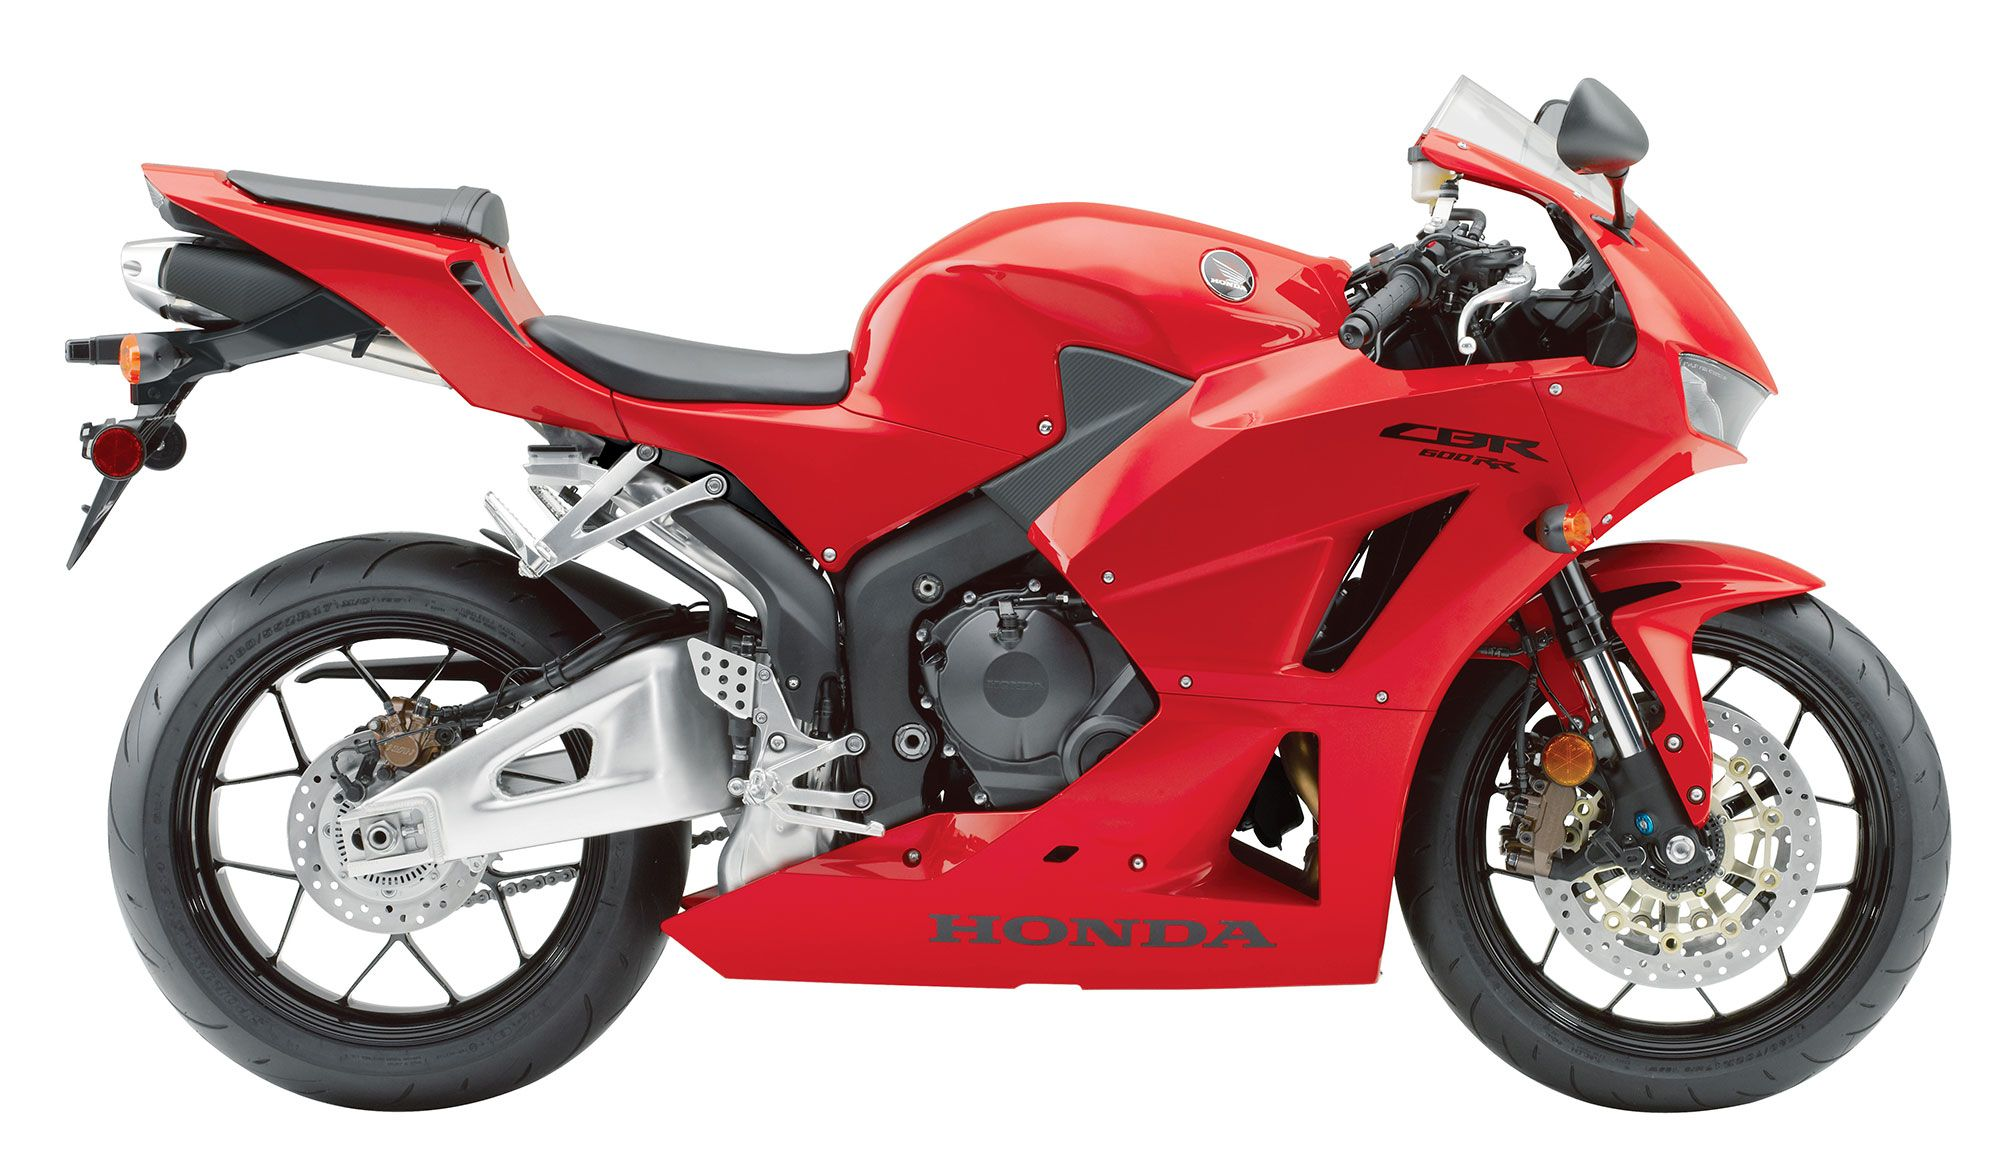 Click On Image To Download Honda Cbr600rr Motorcycle Service Repair Manual 2007 2008 Download Honda Cbr600rr Sports Bikes Motorcycles 2013 Honda